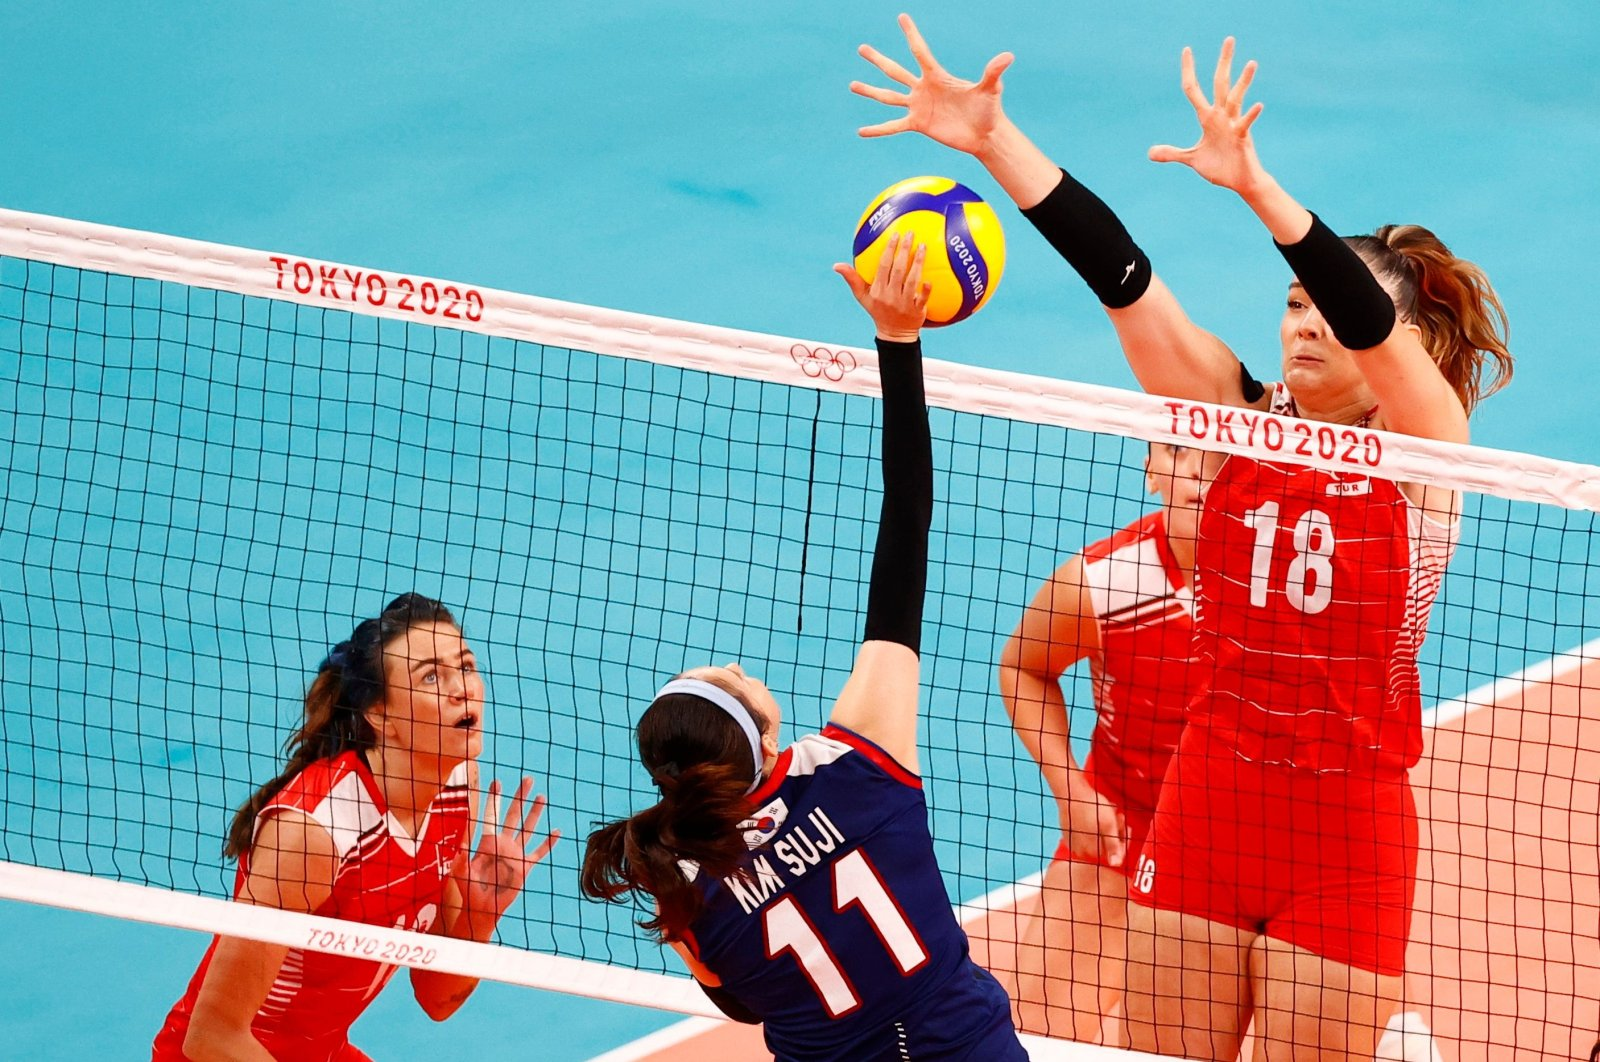 South Korea's Kim Su Ji in action against Turkey's Zehra Güneş (R) in the Tokyo 2020 Olympics women's volleyball quarterfinal at the Ariake Arena, Tokyo, Japan, Aug. 4, 2021. (Reuters Photo)